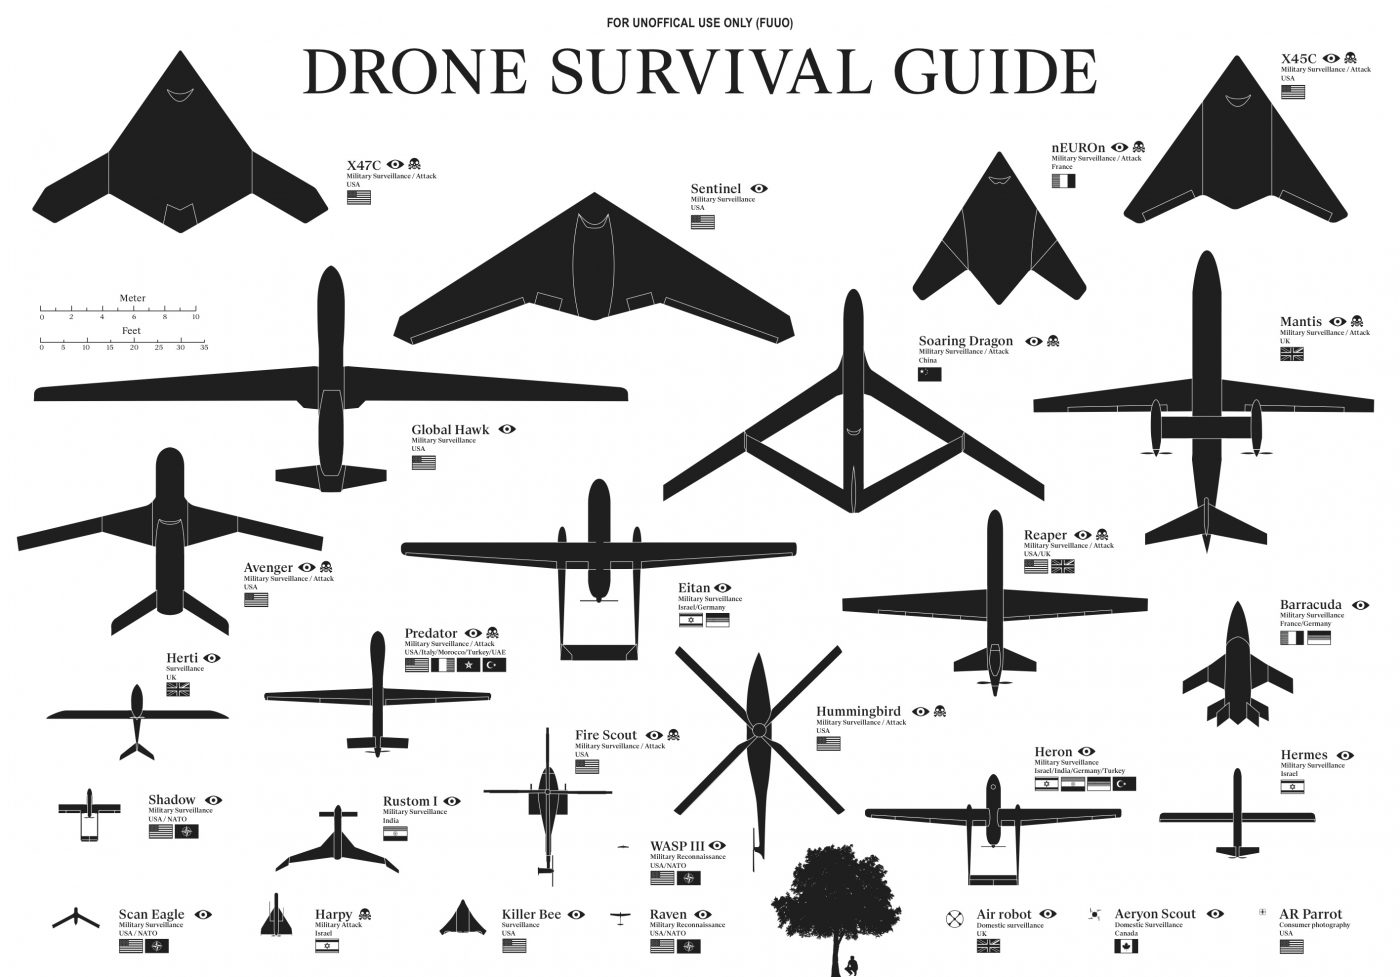 Ruben Pater, Twenty-first century birdwatching. Drone Survival Guide, 2013